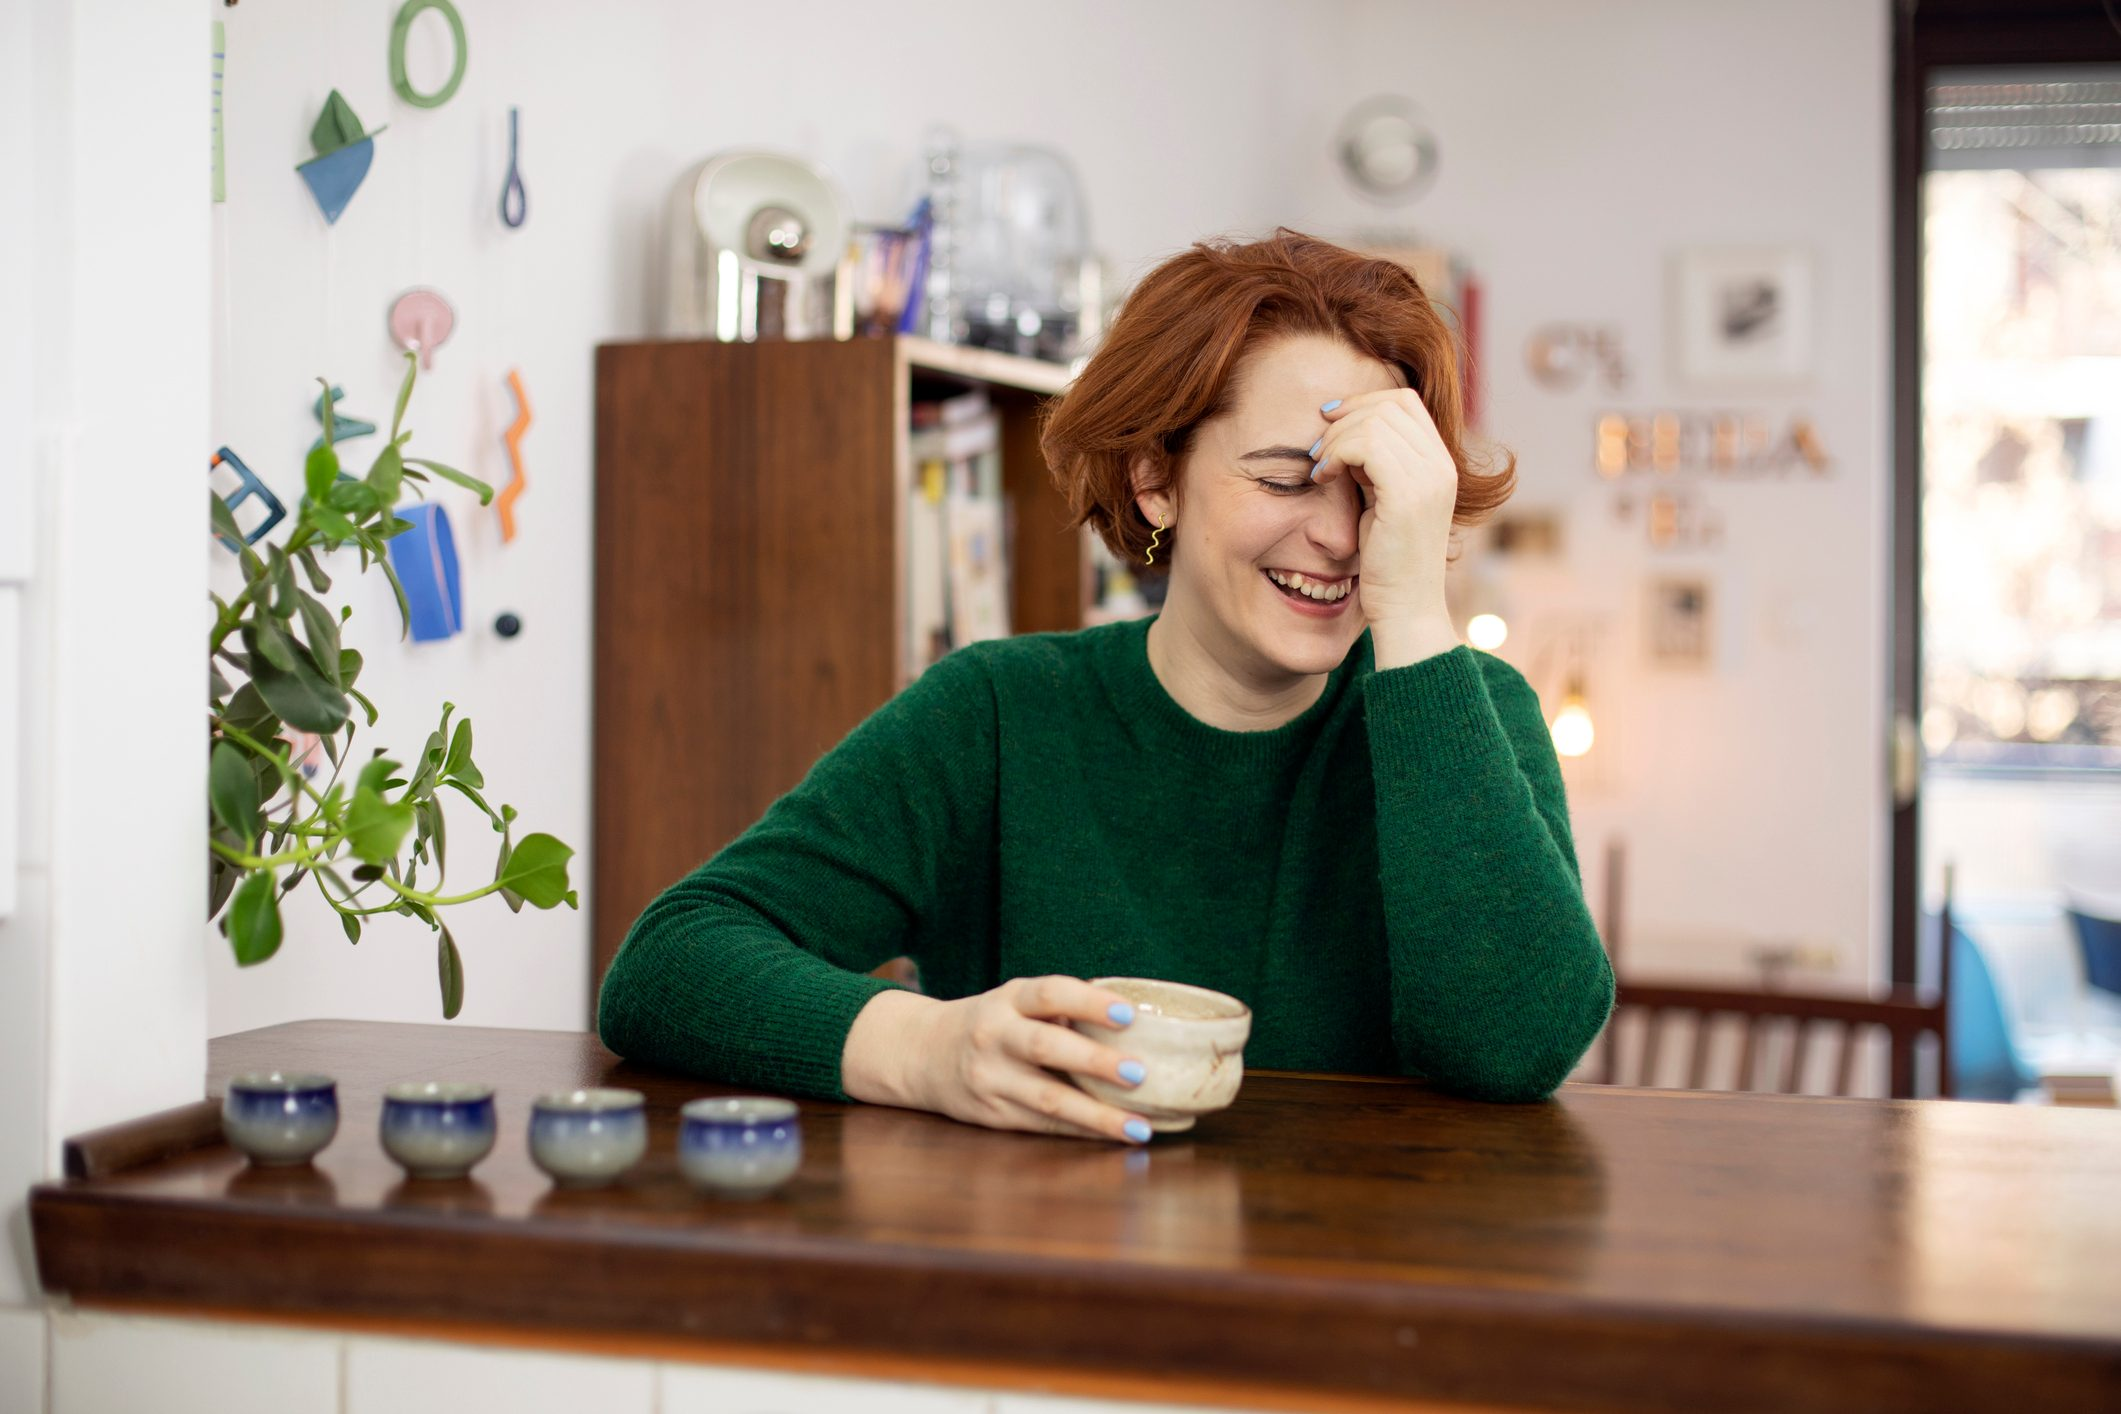 woman laughing at home drinking tea